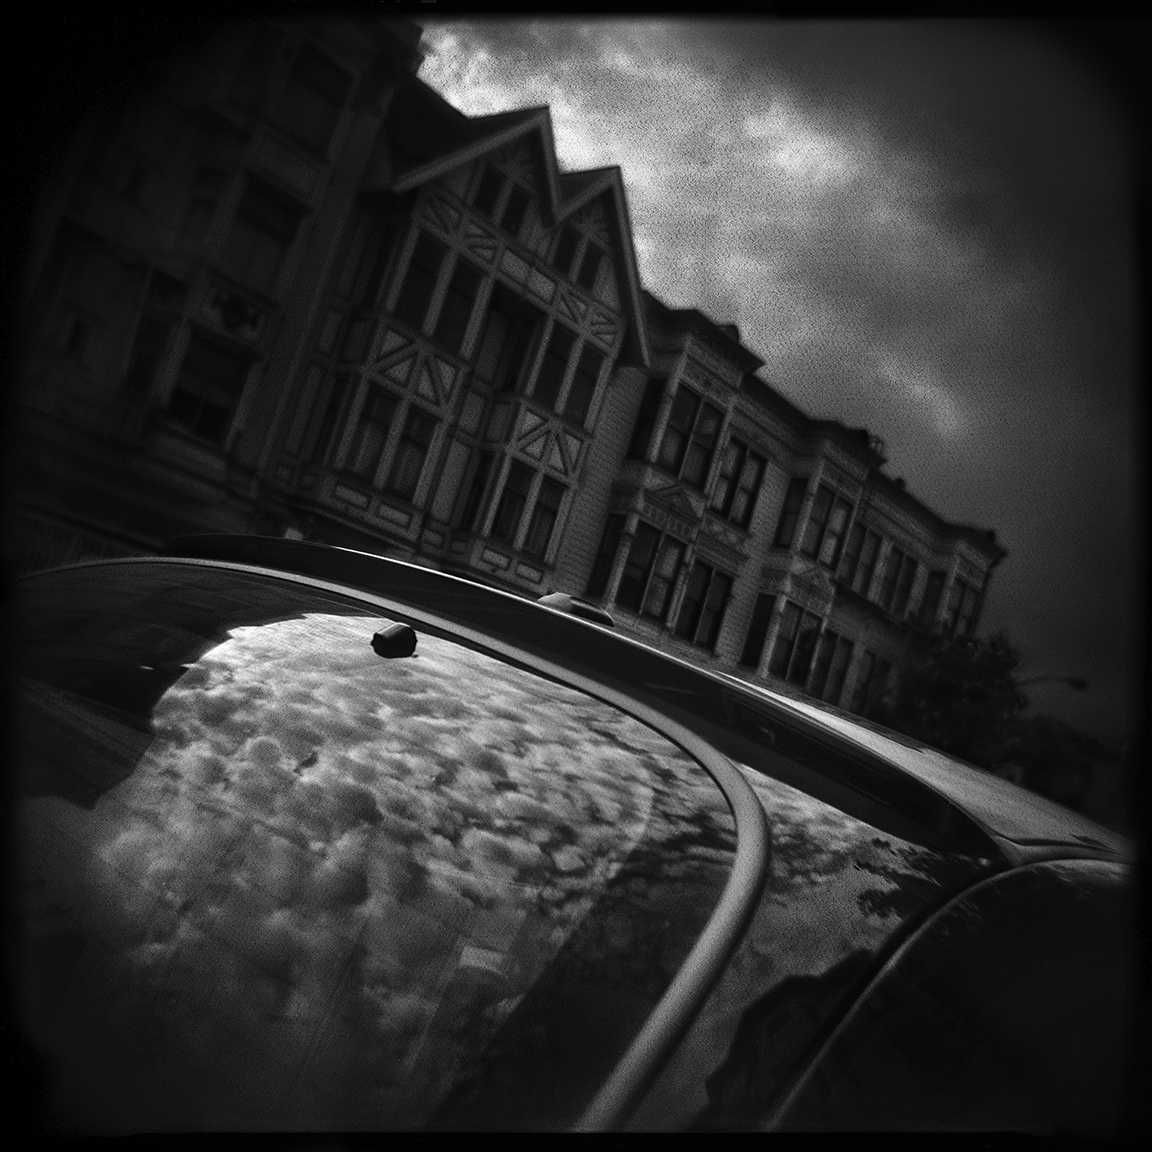 19-SF-HOLGA-WEBSITE-060314